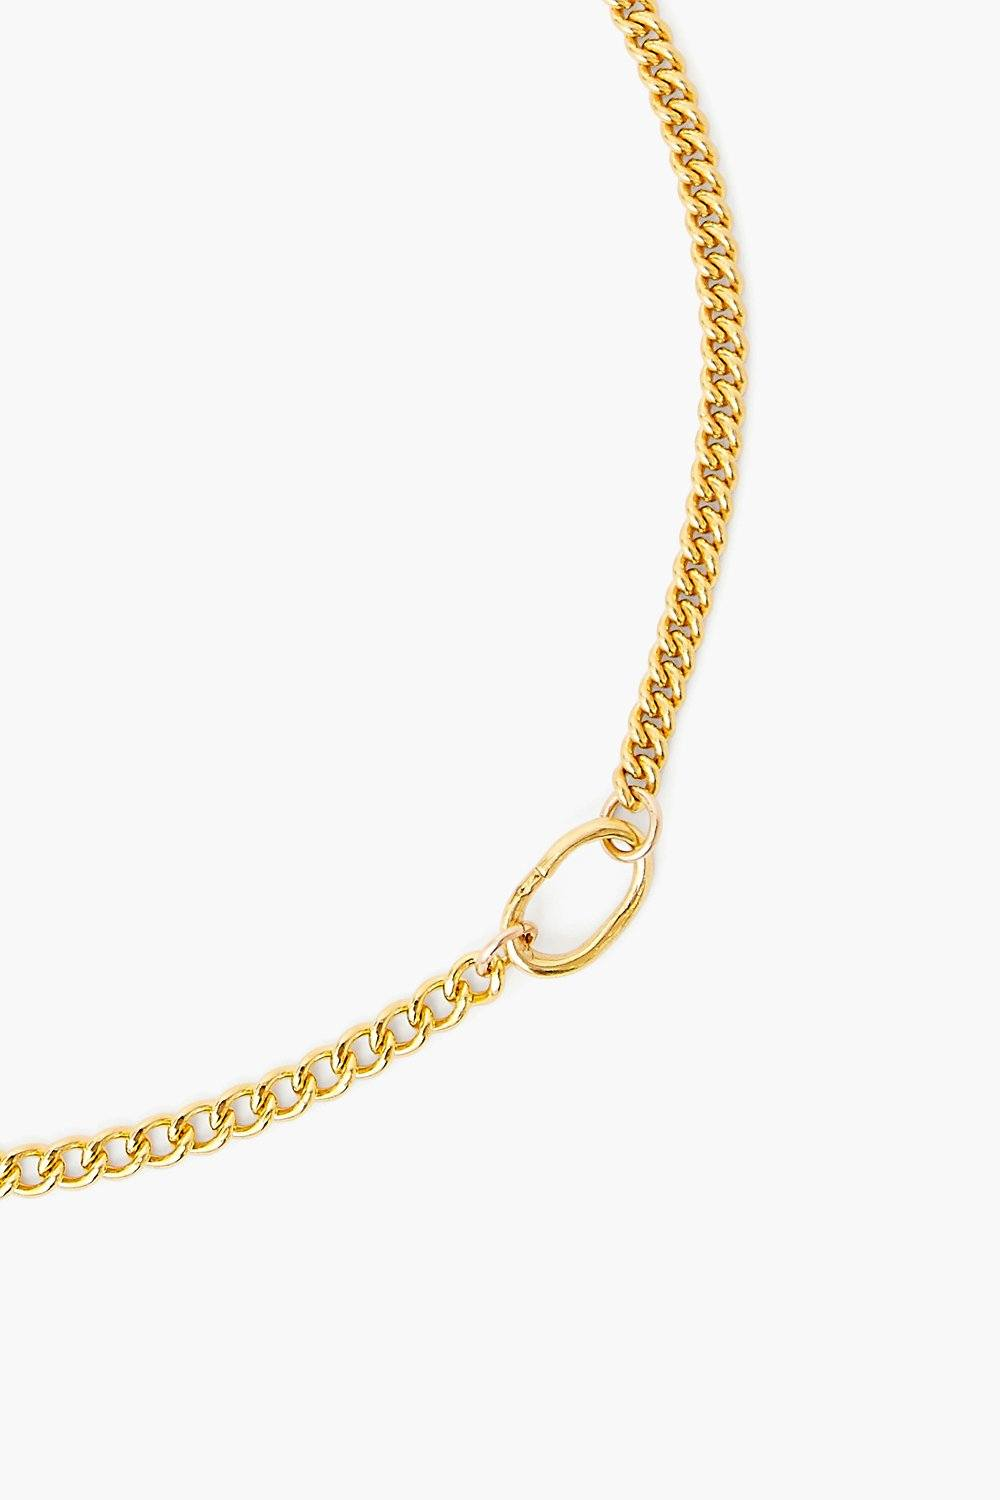 Sculptural Ring Gold Chain Link Necklace